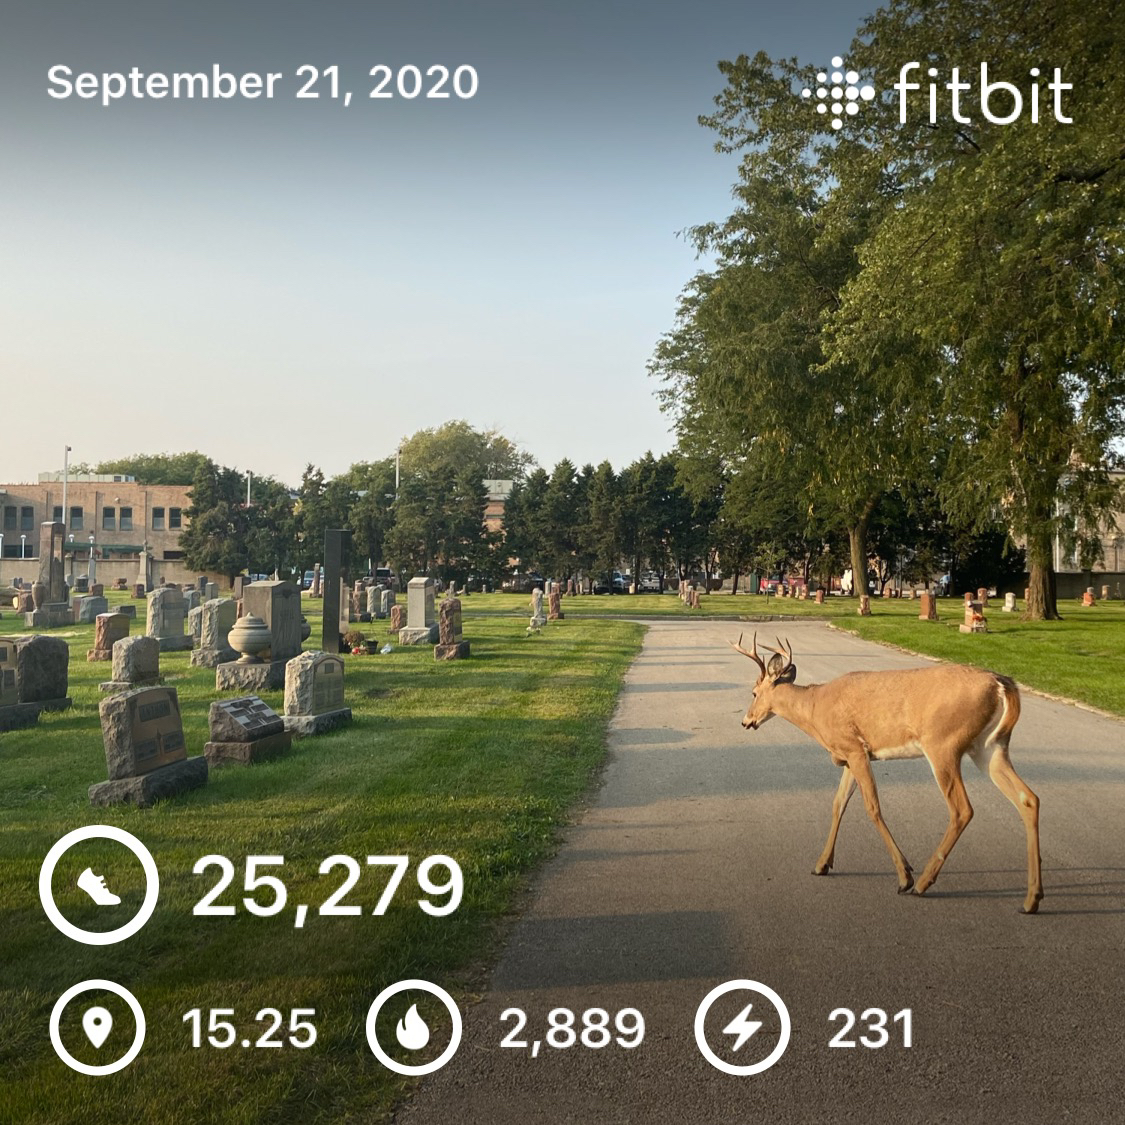 [IMAGE] I logged my all-time personal best day (since November '19) and made a friend at the cemetery. Lately, it feels like too much work to get out of bed and out of my apartment. Days like today help prove it's worth it.